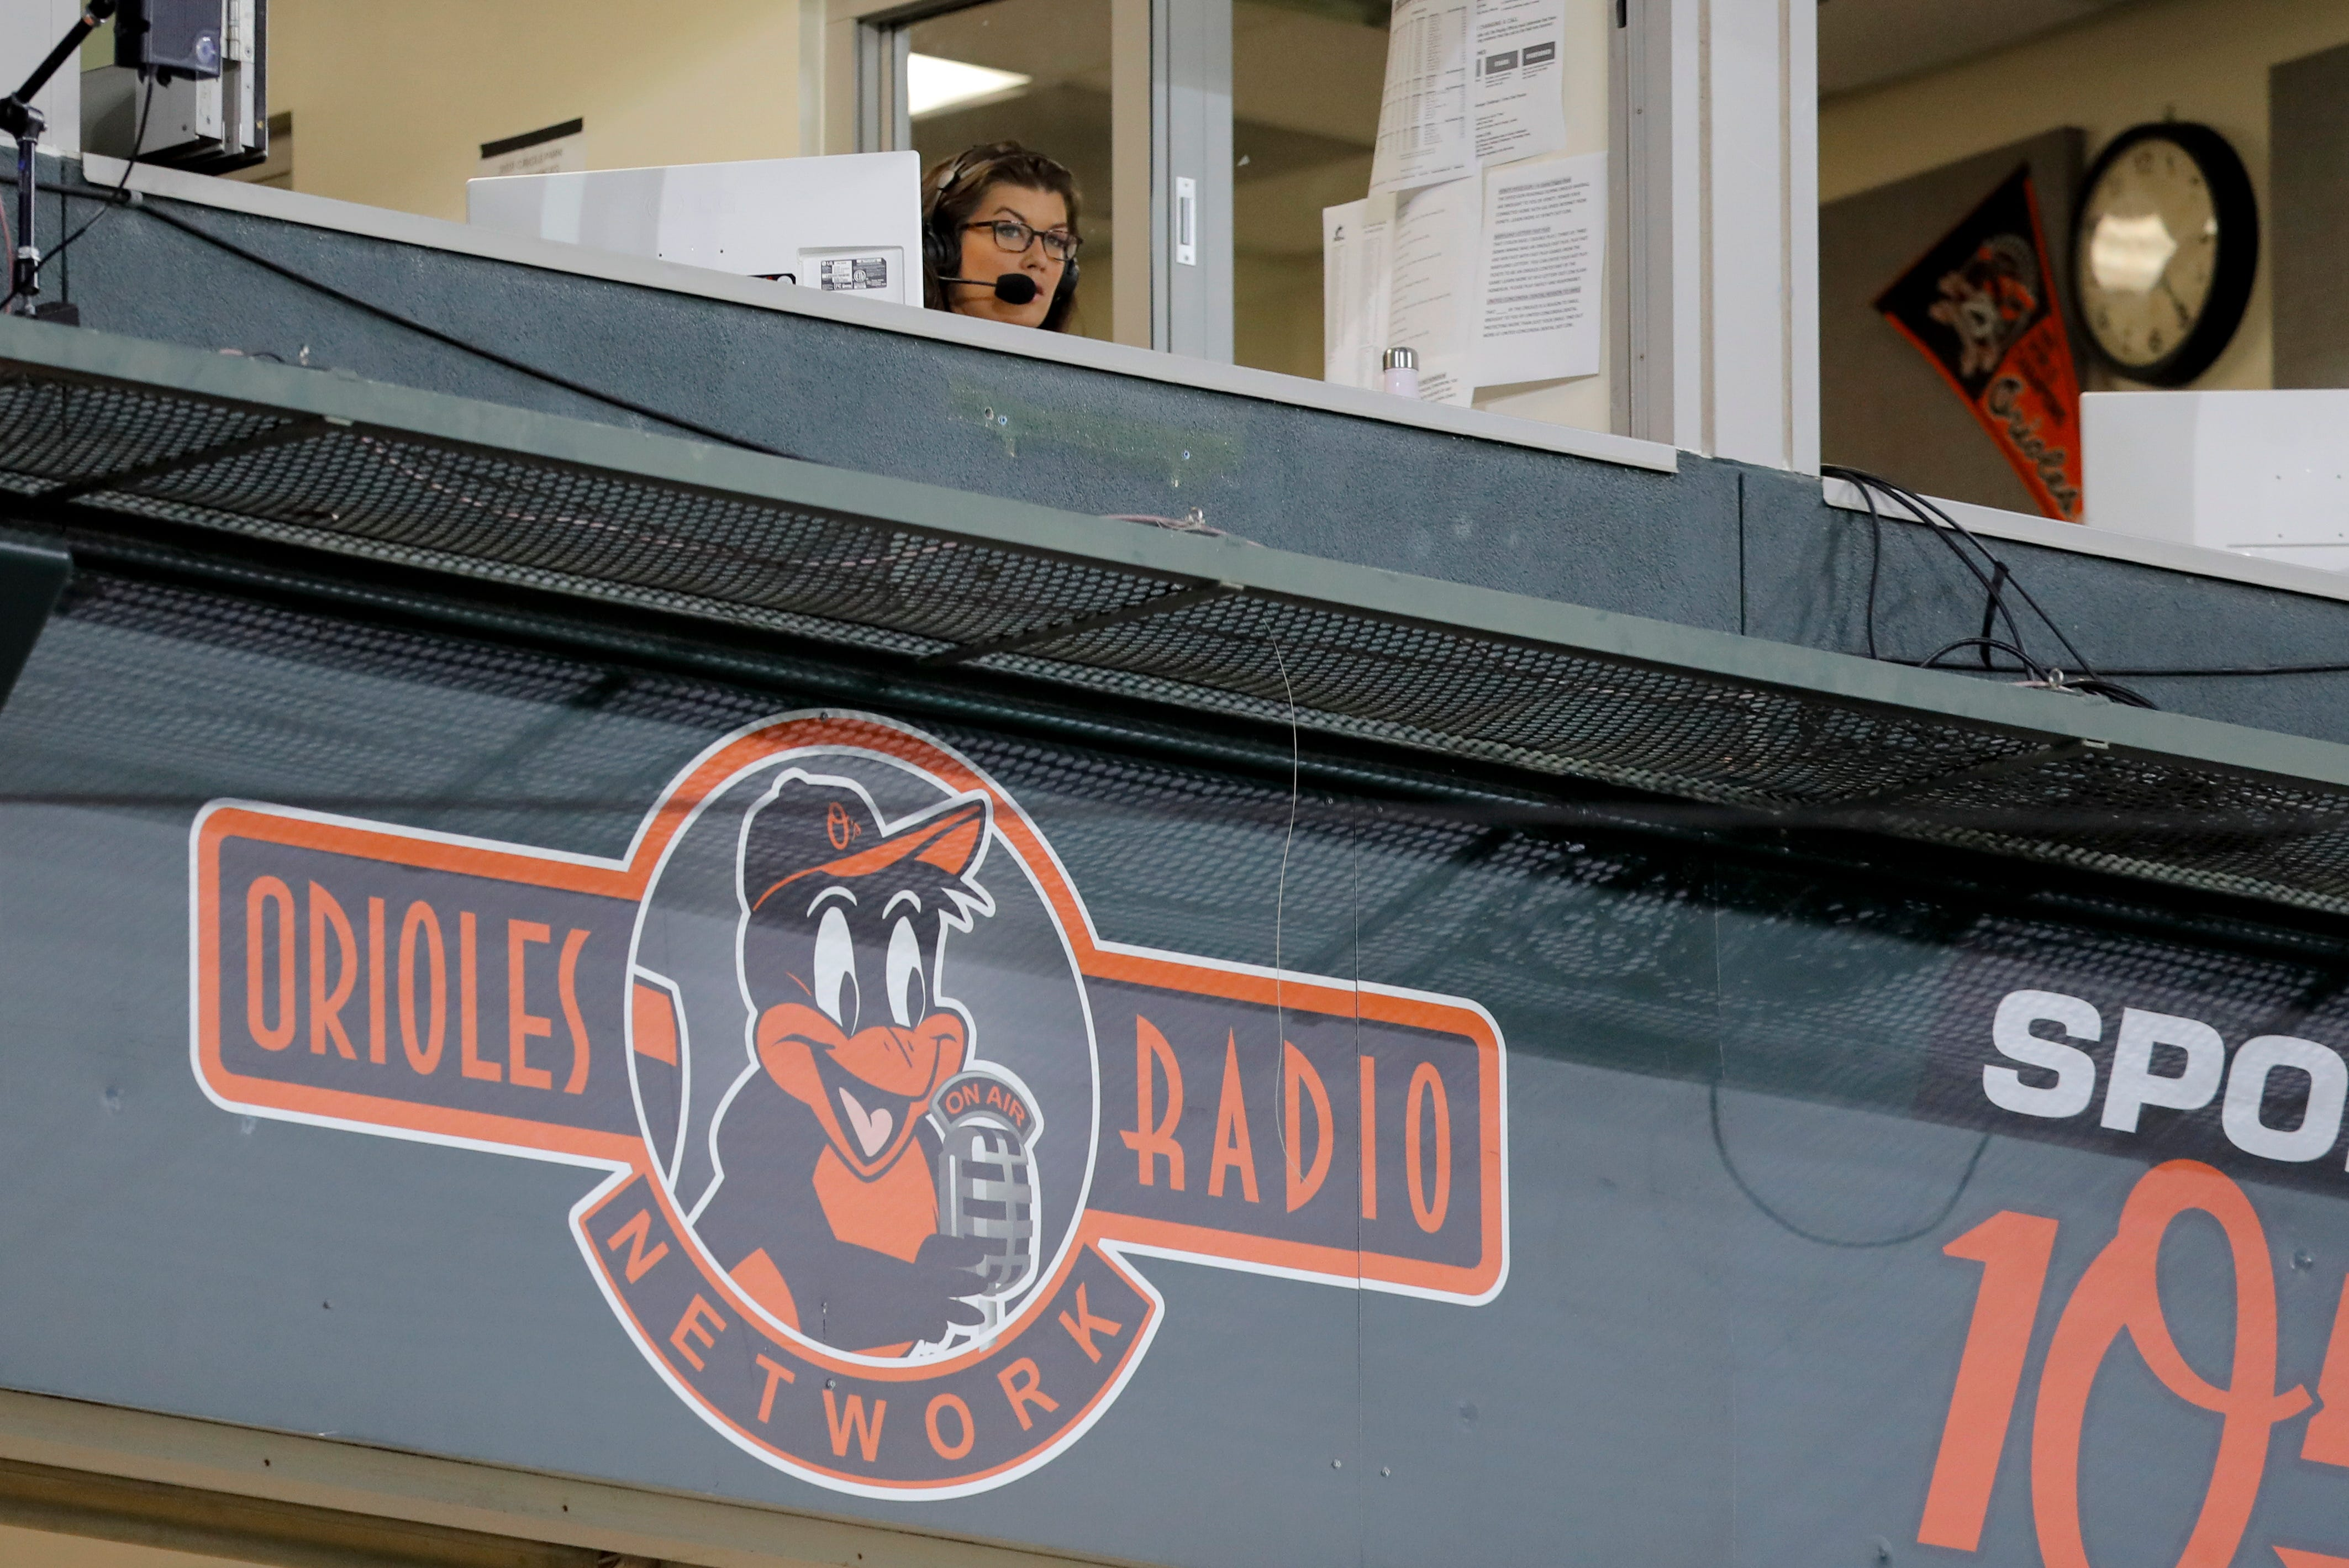 Melanie Newman, Jessica Mendoza to call ESPN s first all-female MLB broadcast on Sept. 29